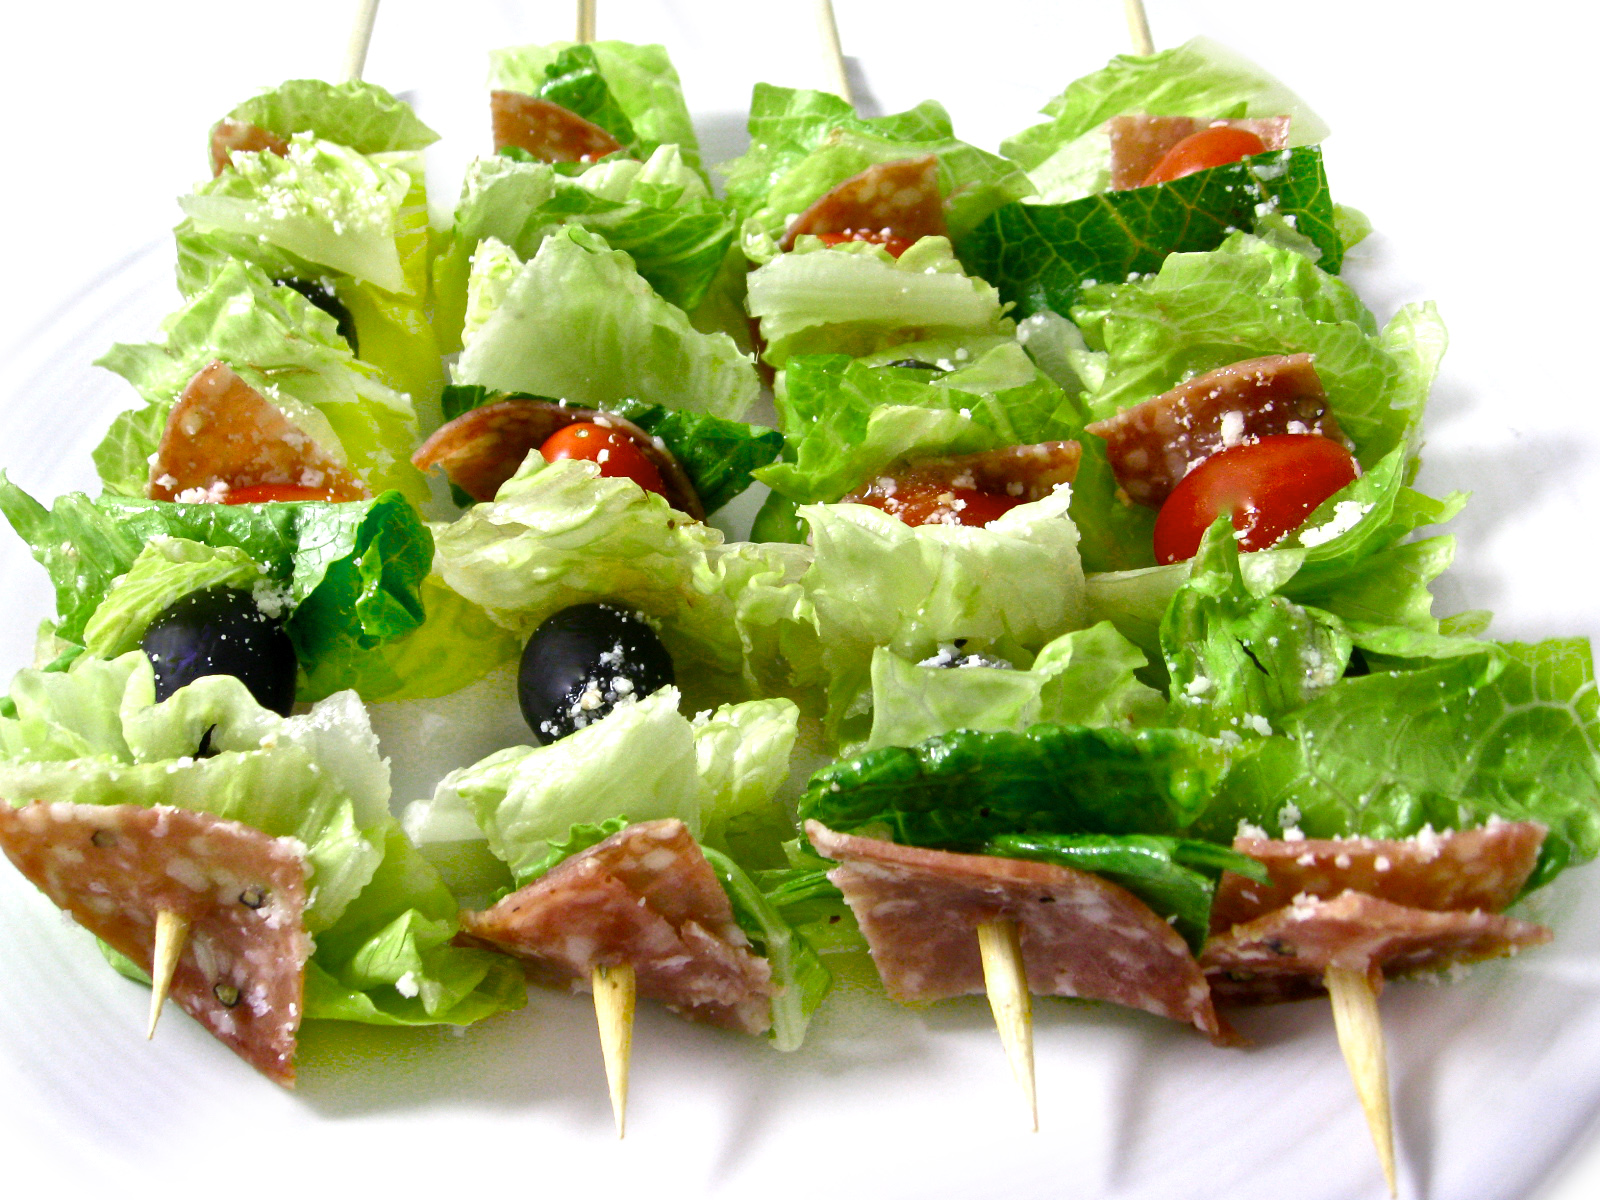 ... way to serve a salad so low in carbs and calories and taste like an